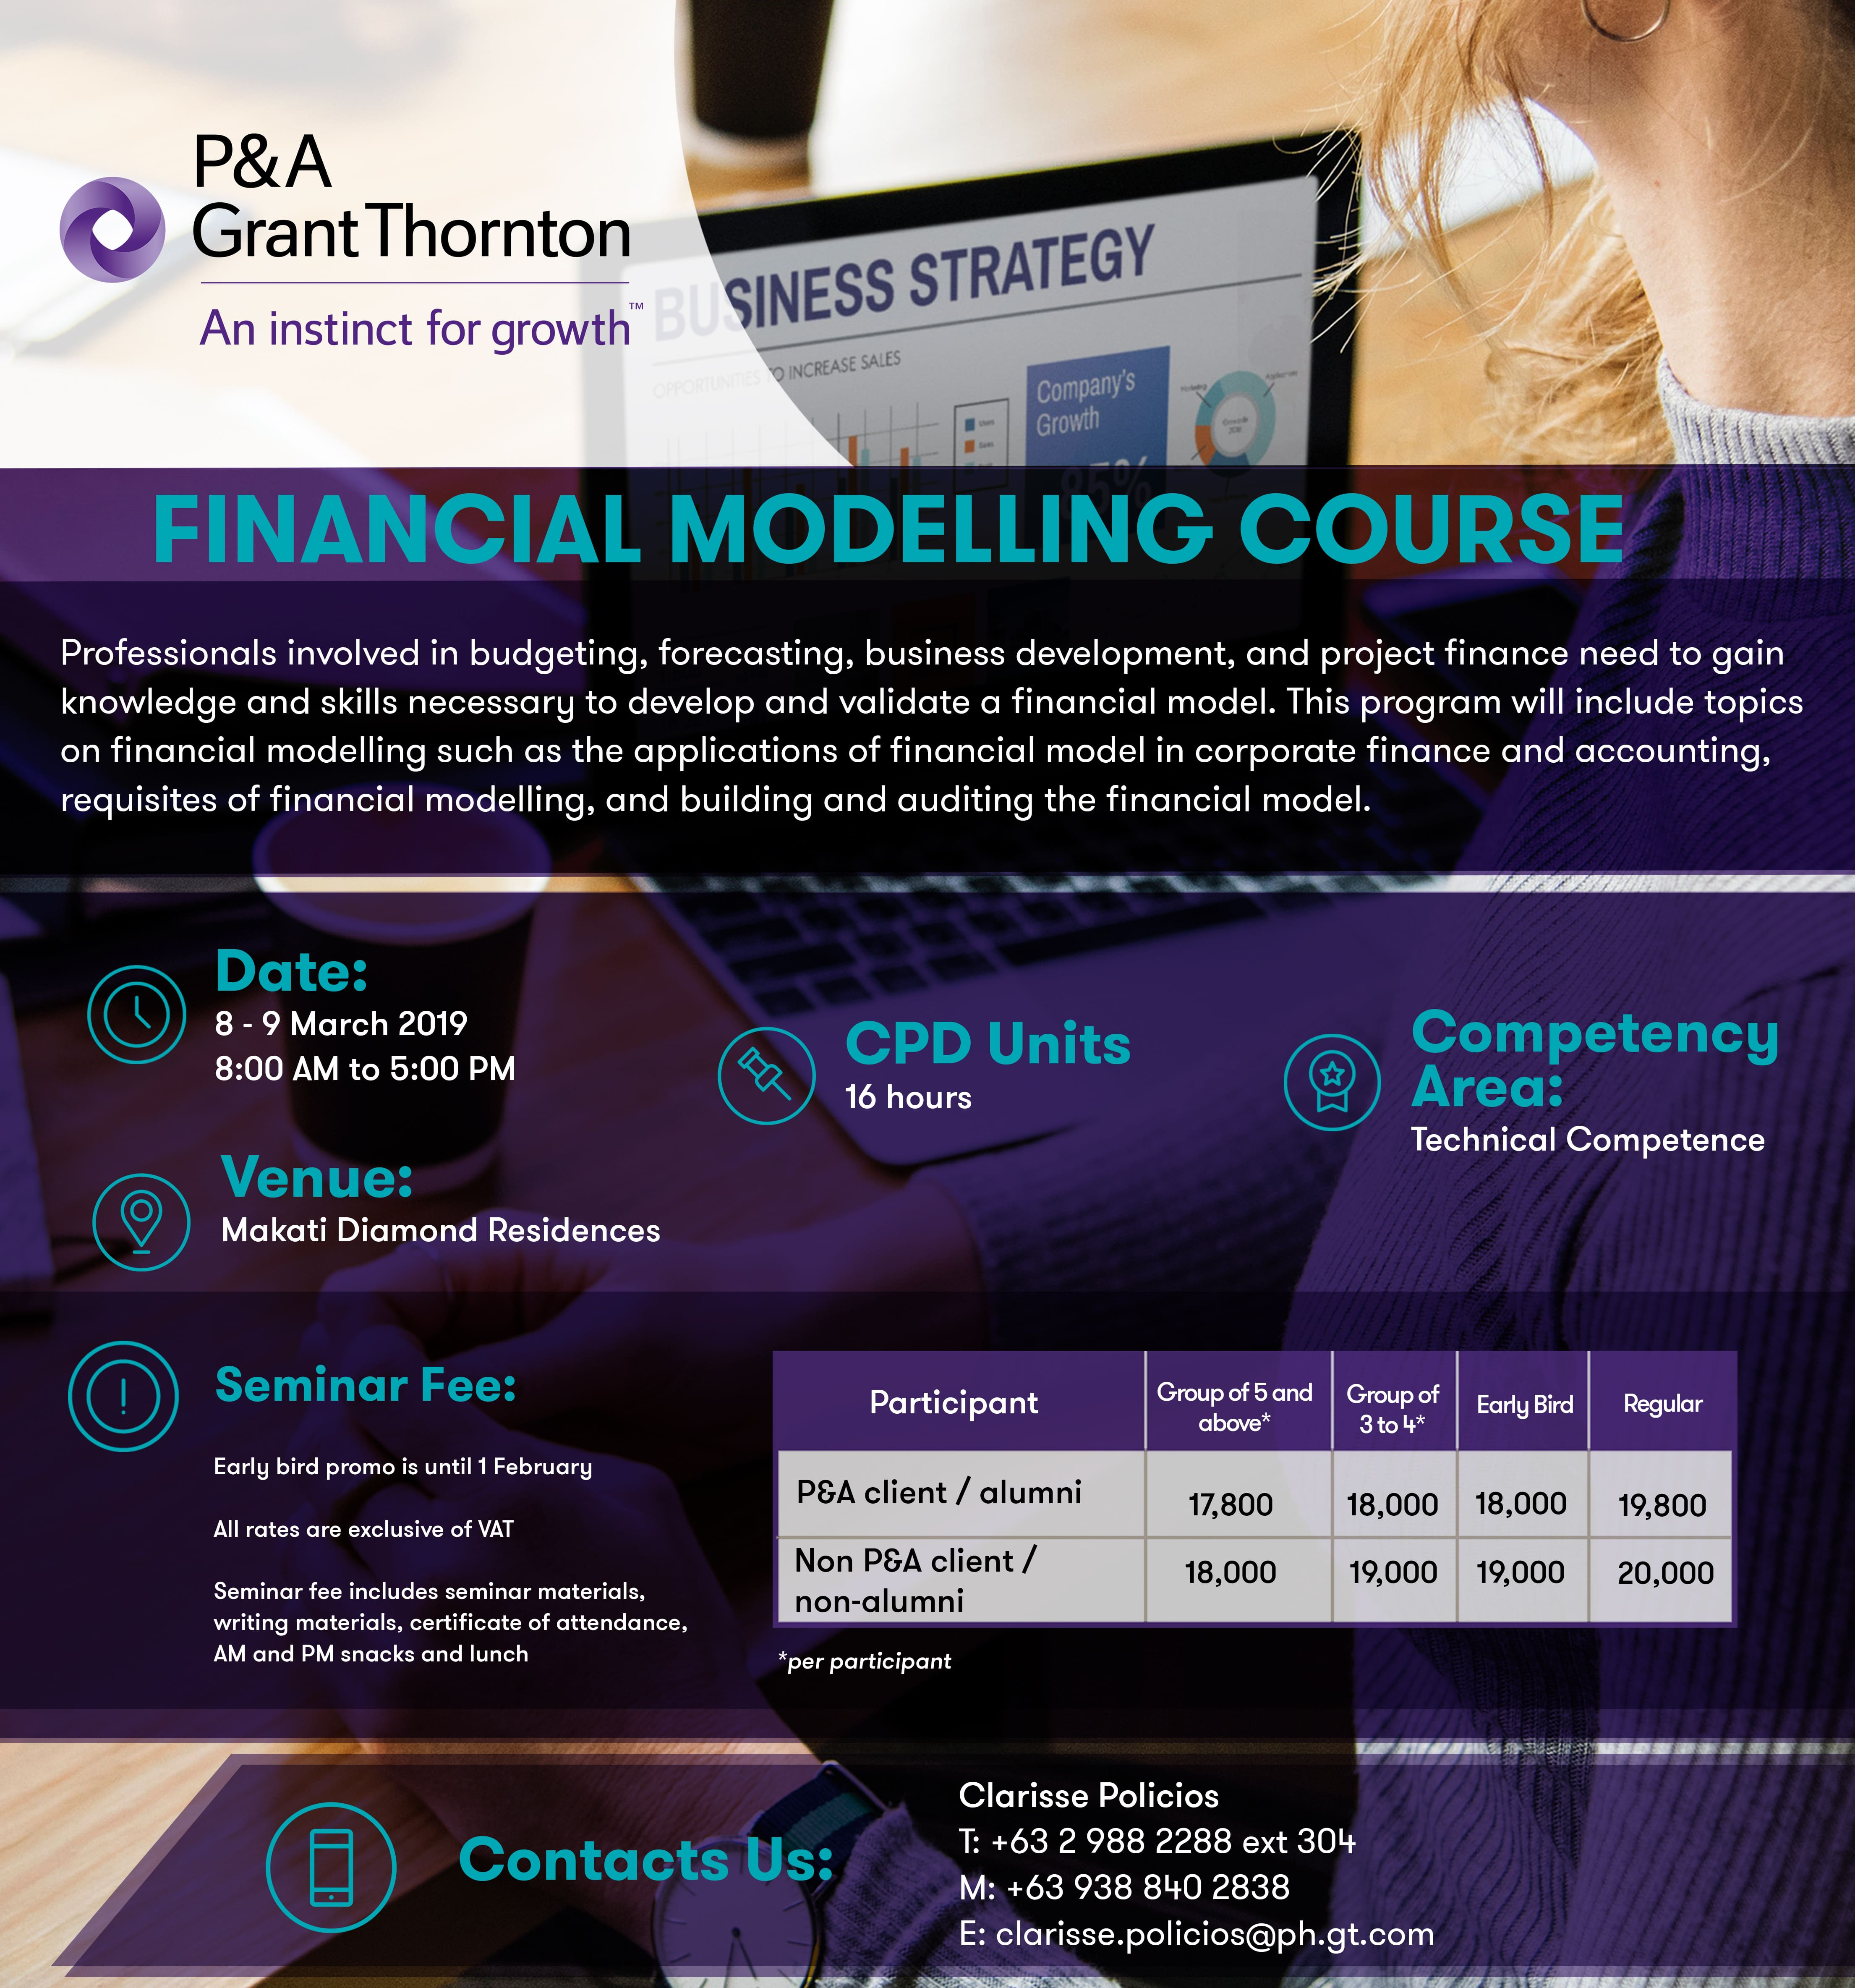 Financial Modelling Course | Grant Thornton